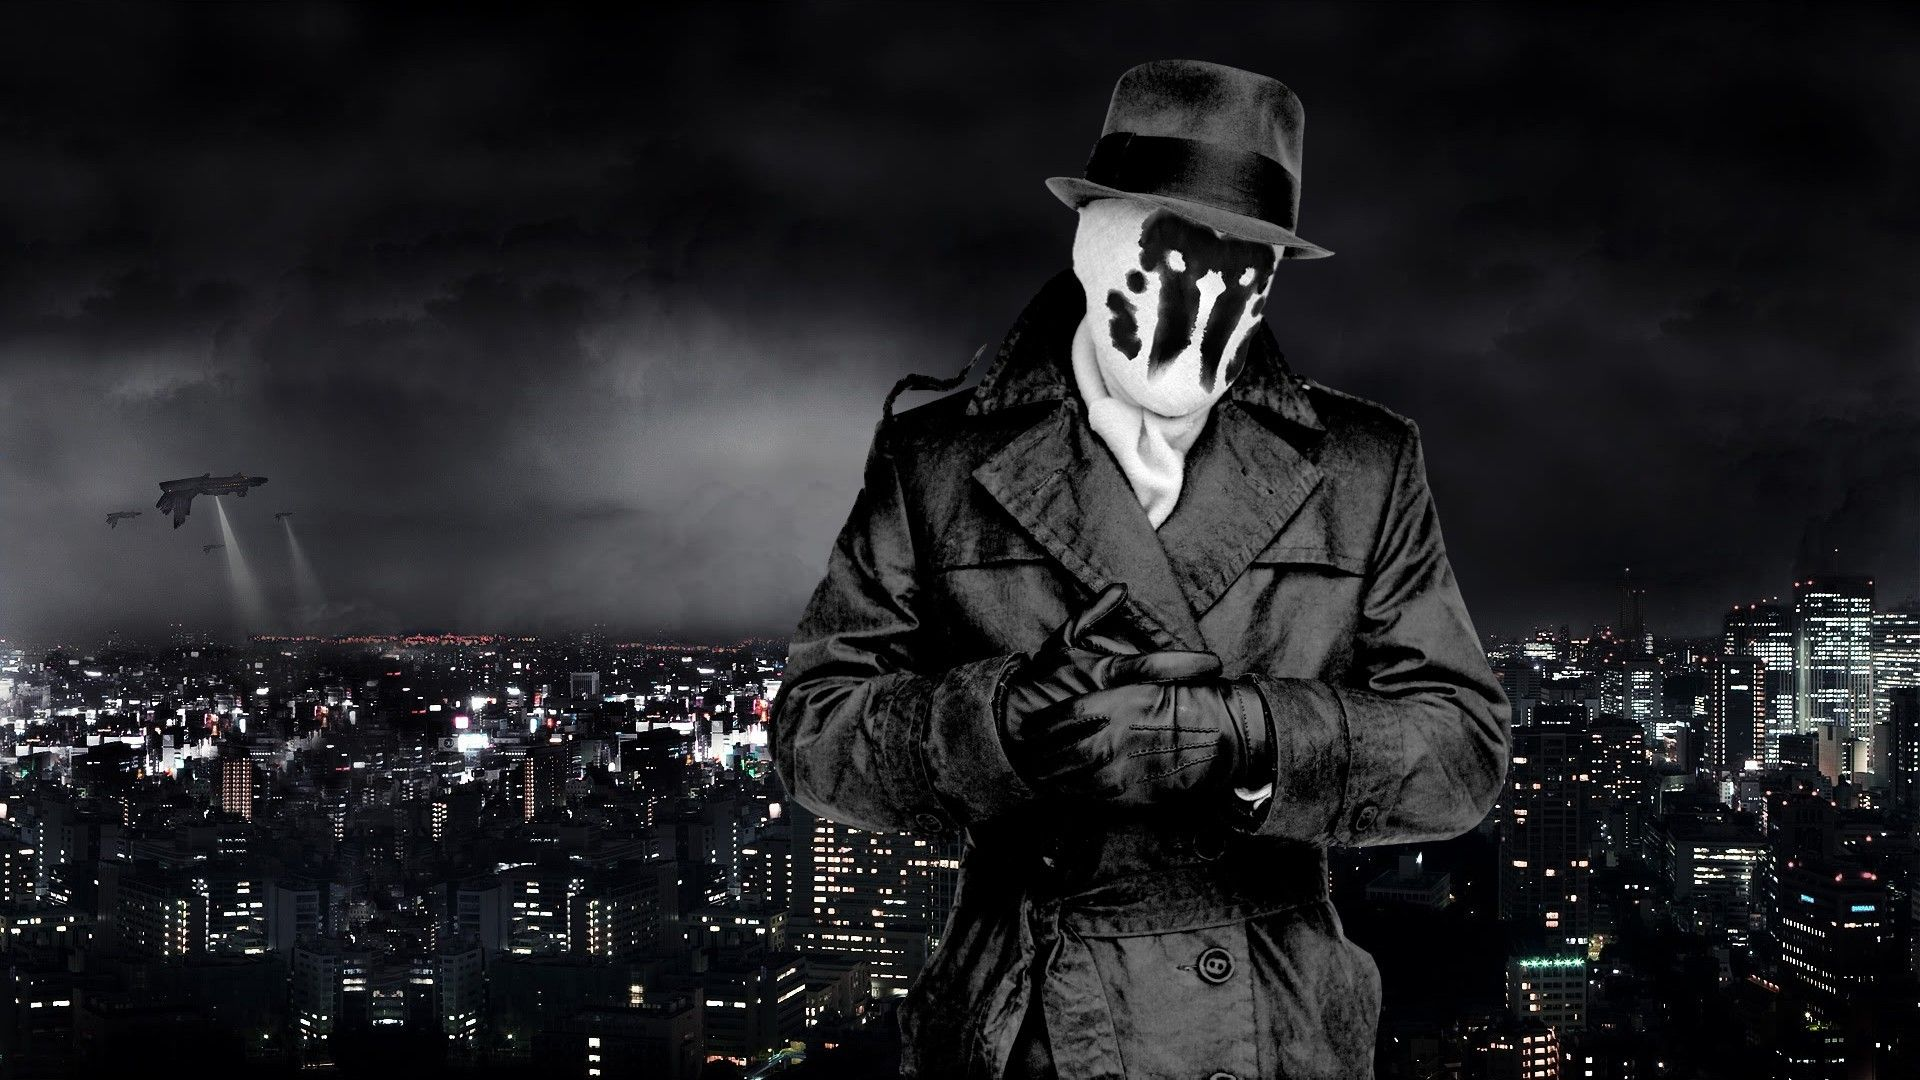 Download Hd Wallpapers Of 54130 Movies Watchmen Cityscape Rorschach Free Download High Quality And Widescreen Resolut Watchmen Rorschach Watchmen Rorschach